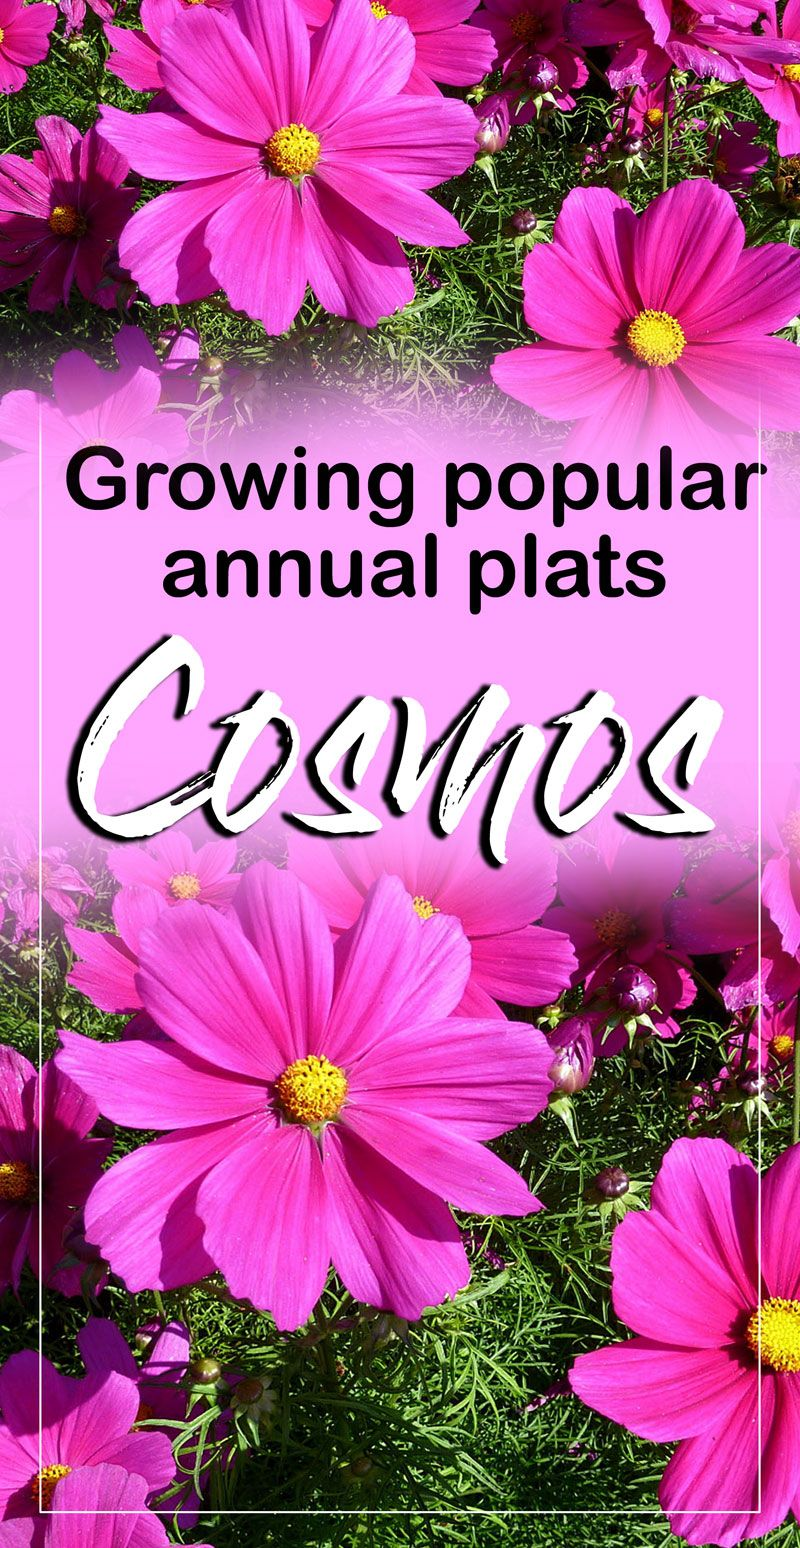 How To Grow Grow Cosmos Flower Annual Plants Plants Common Garden Plants